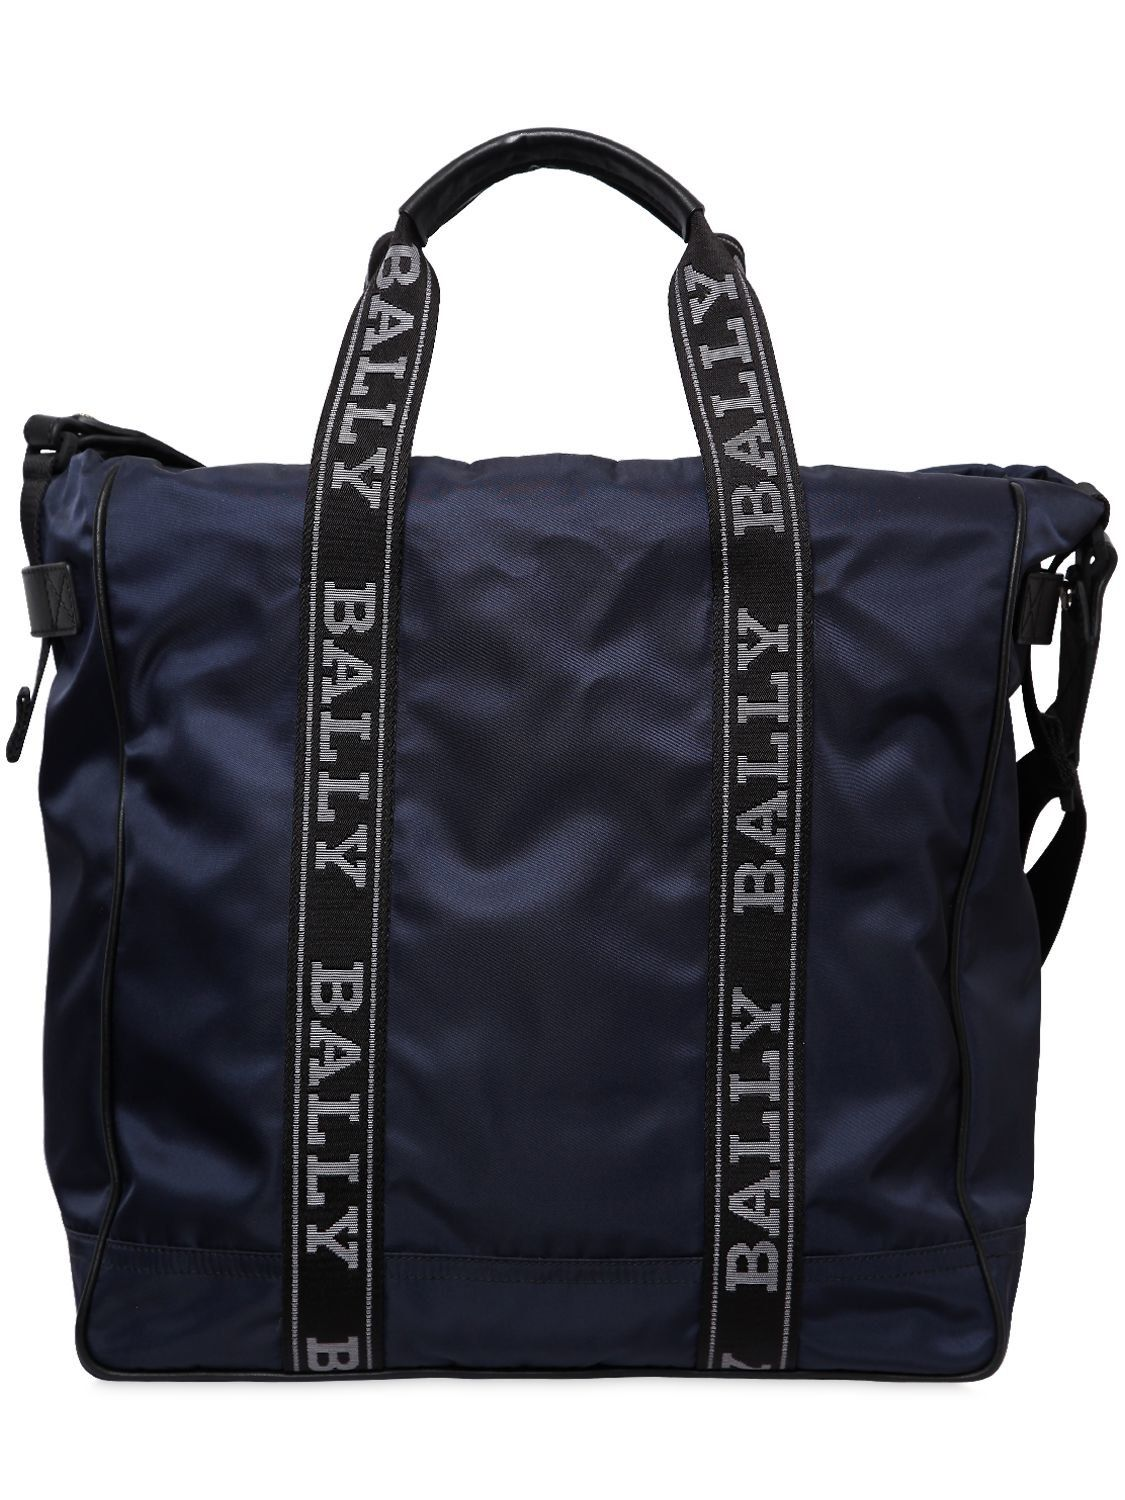 5bc8bc3707c BALLY NYLON TOTE BAG W  LOGO BANDS.  bally  bags  tote  leather  lining   shoulder bags  hand bags  nylon